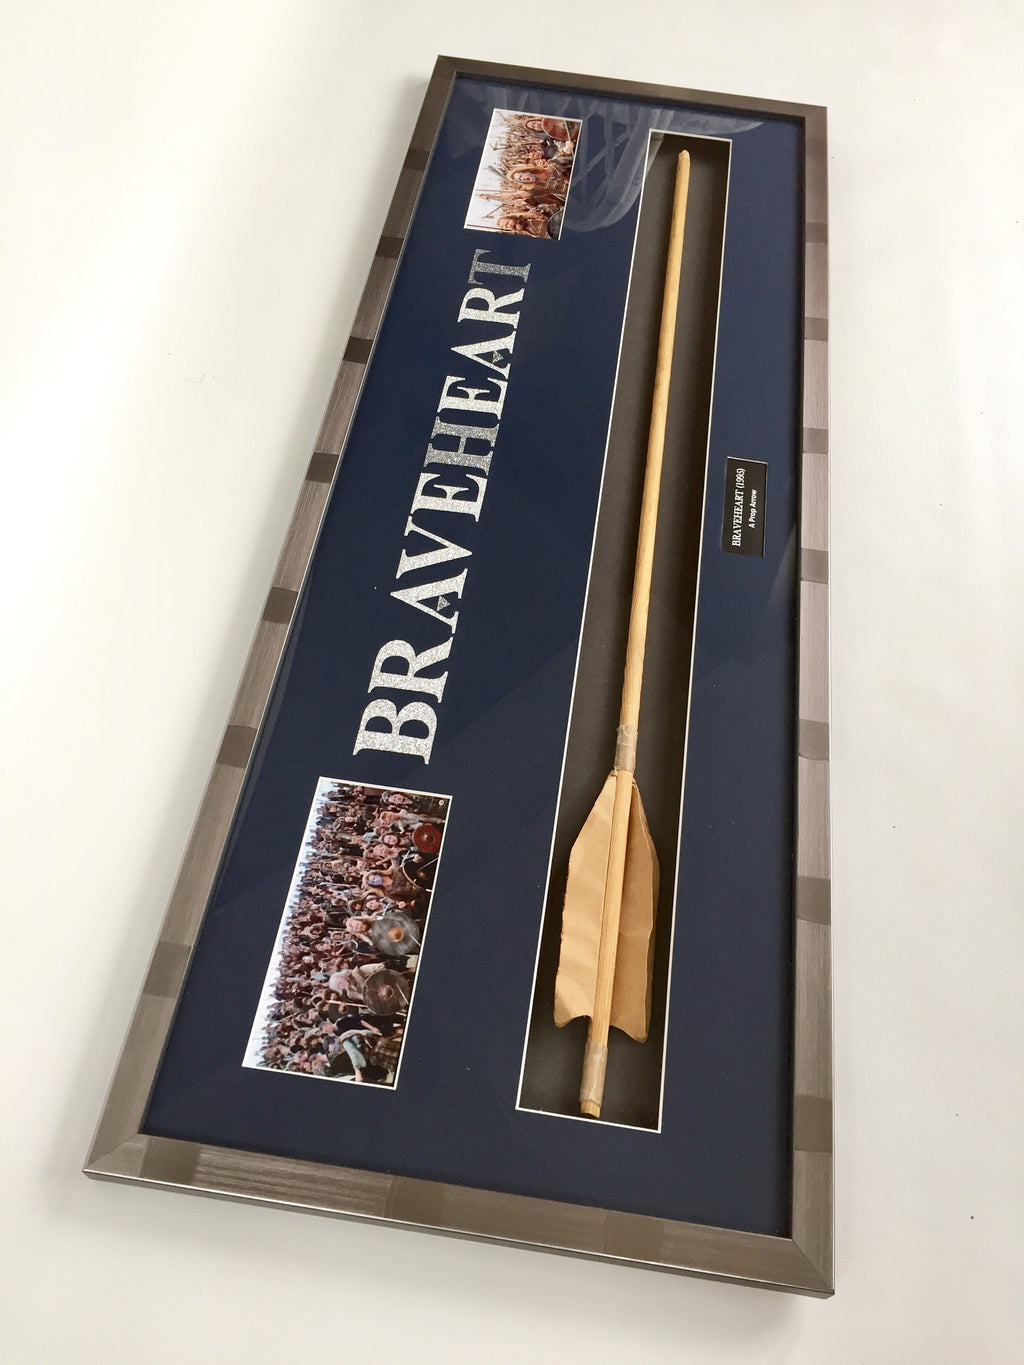 Braveheart (1995) A Prop Arrow (SOLD)